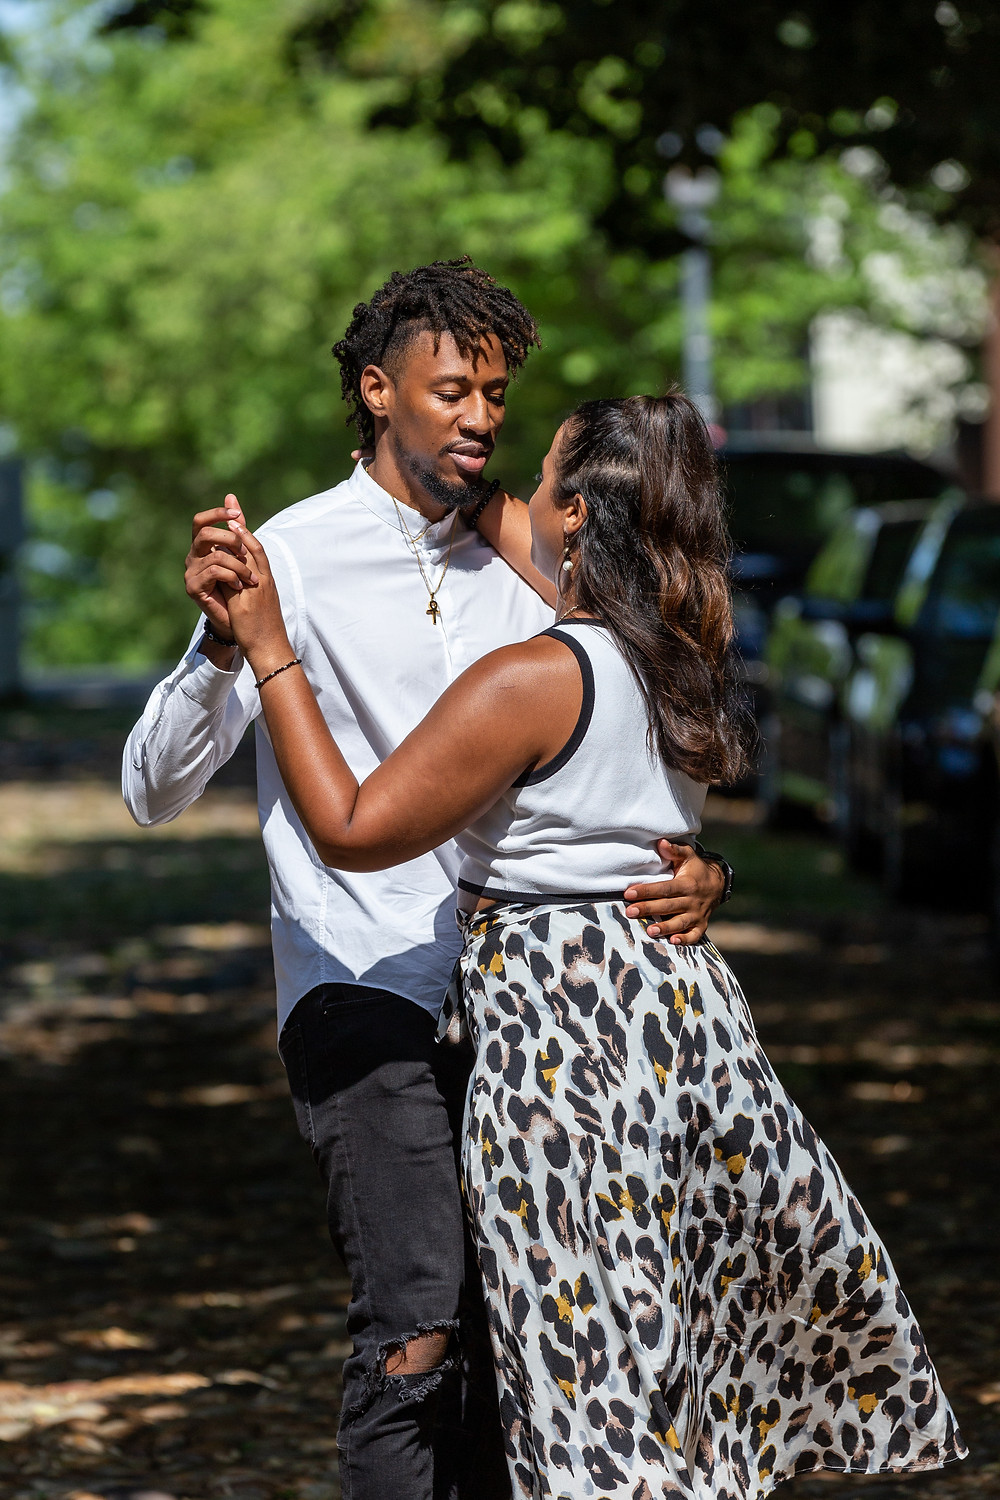 Couple dance on the cobblestone street during their engagement session in Old Town Alexandria, Virginia.